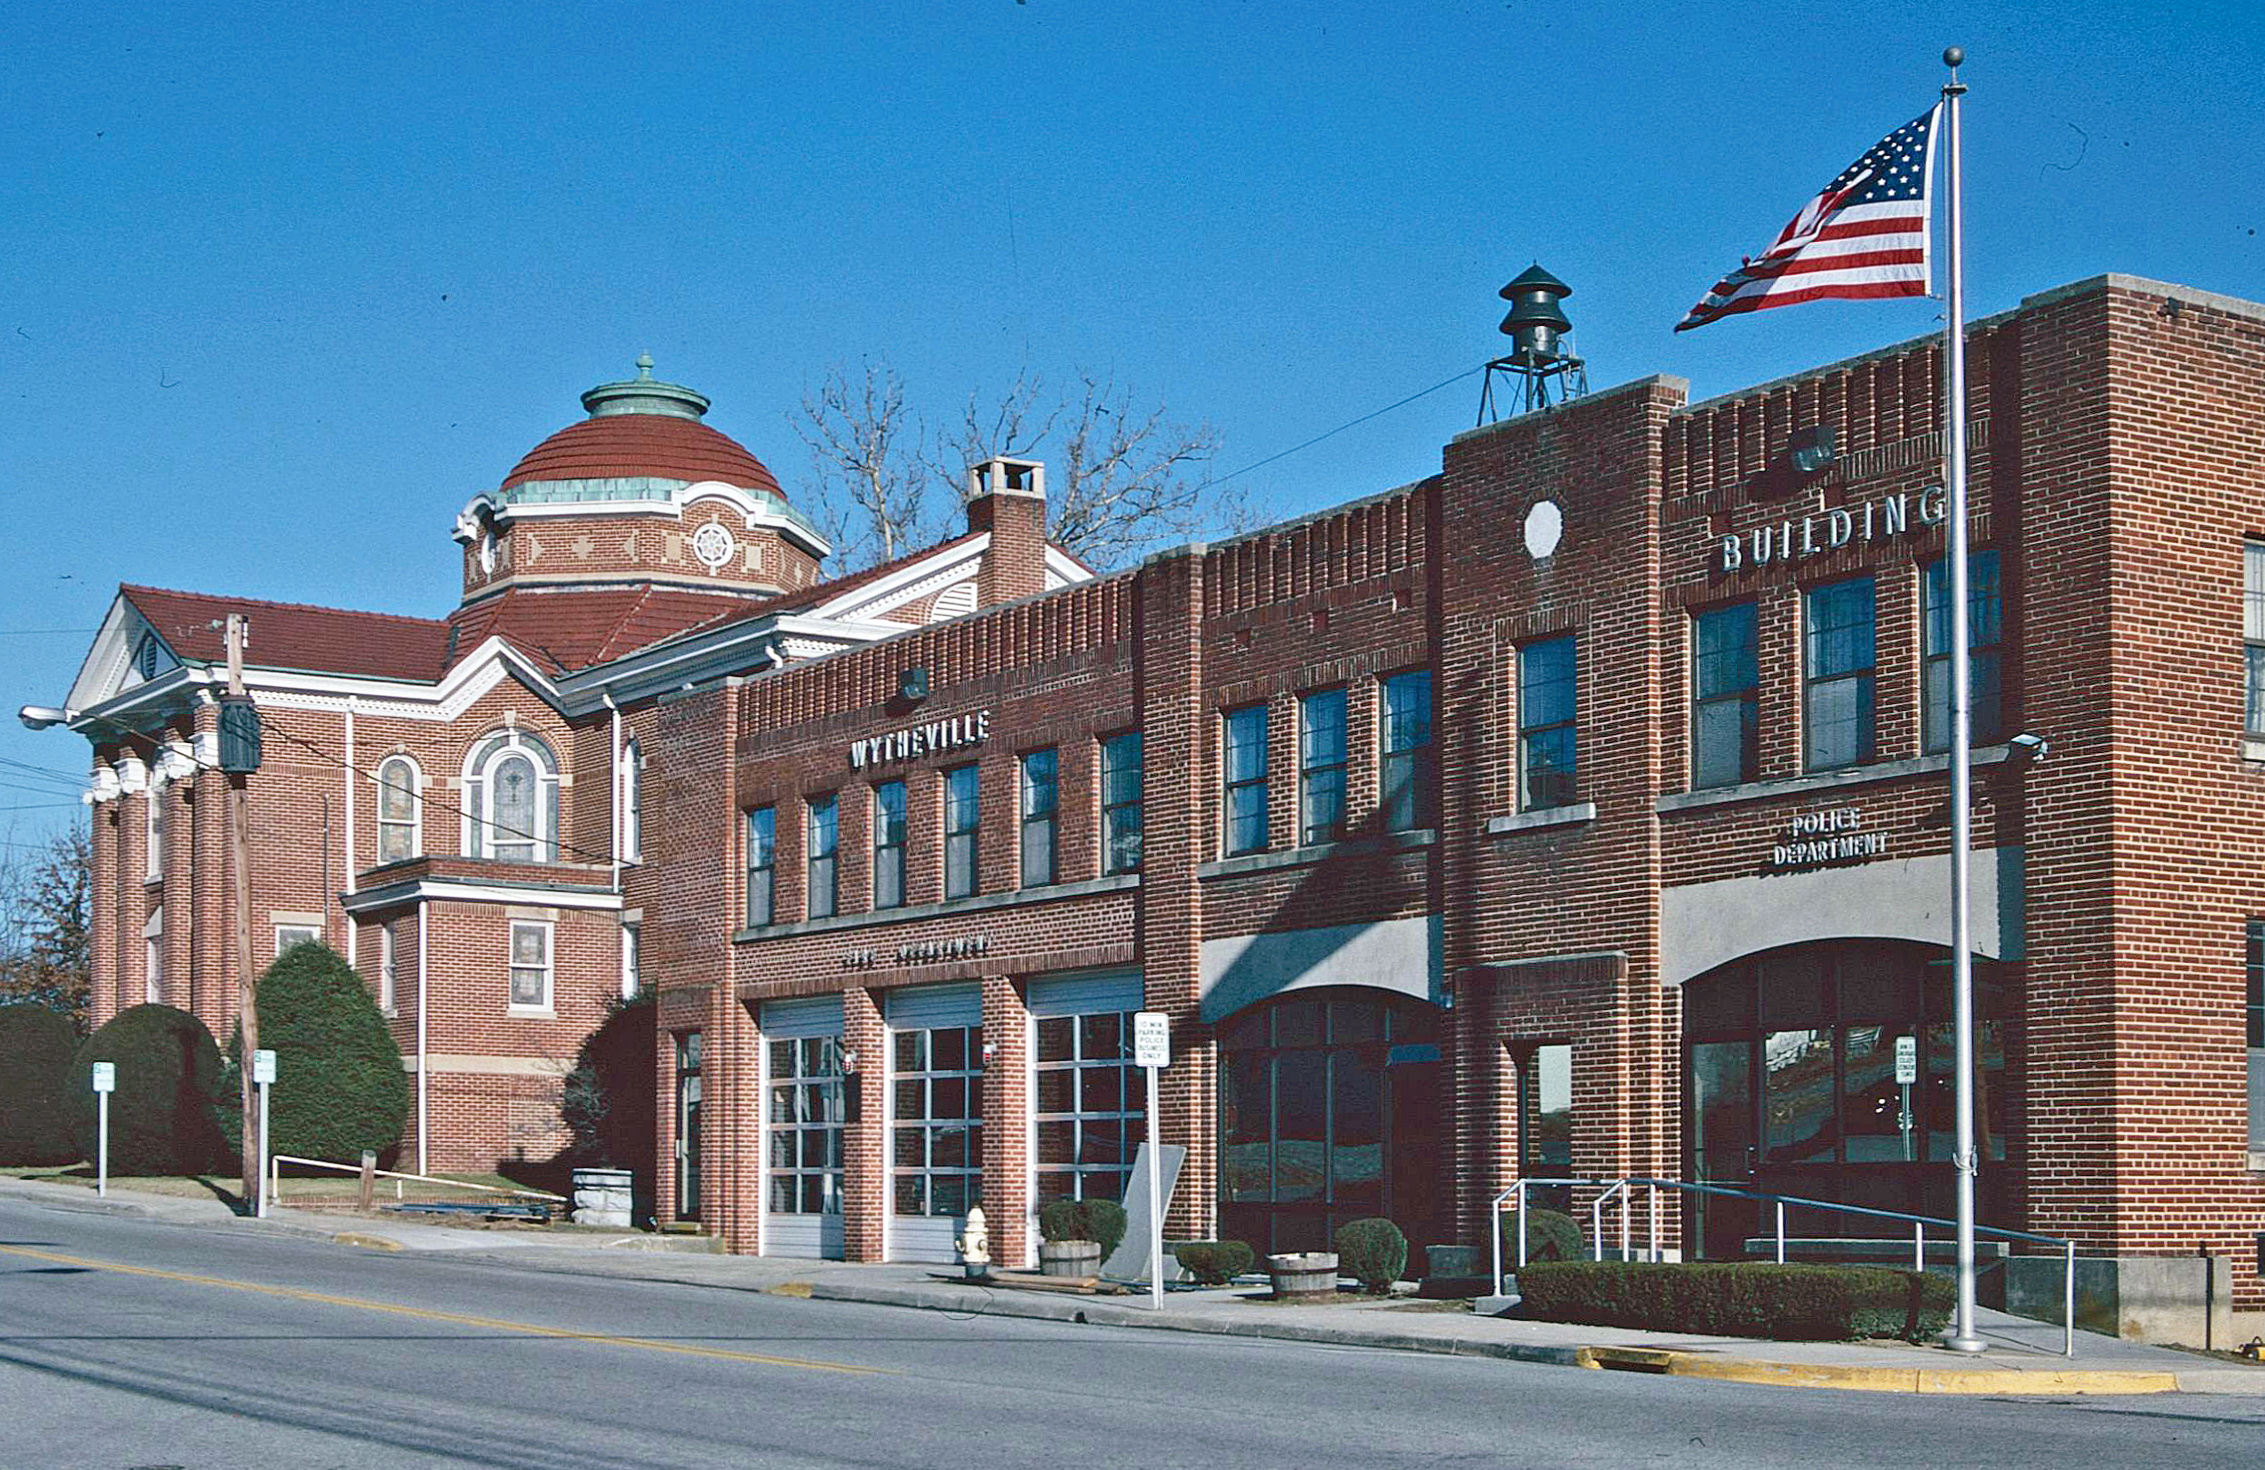 Wytheville Historic District